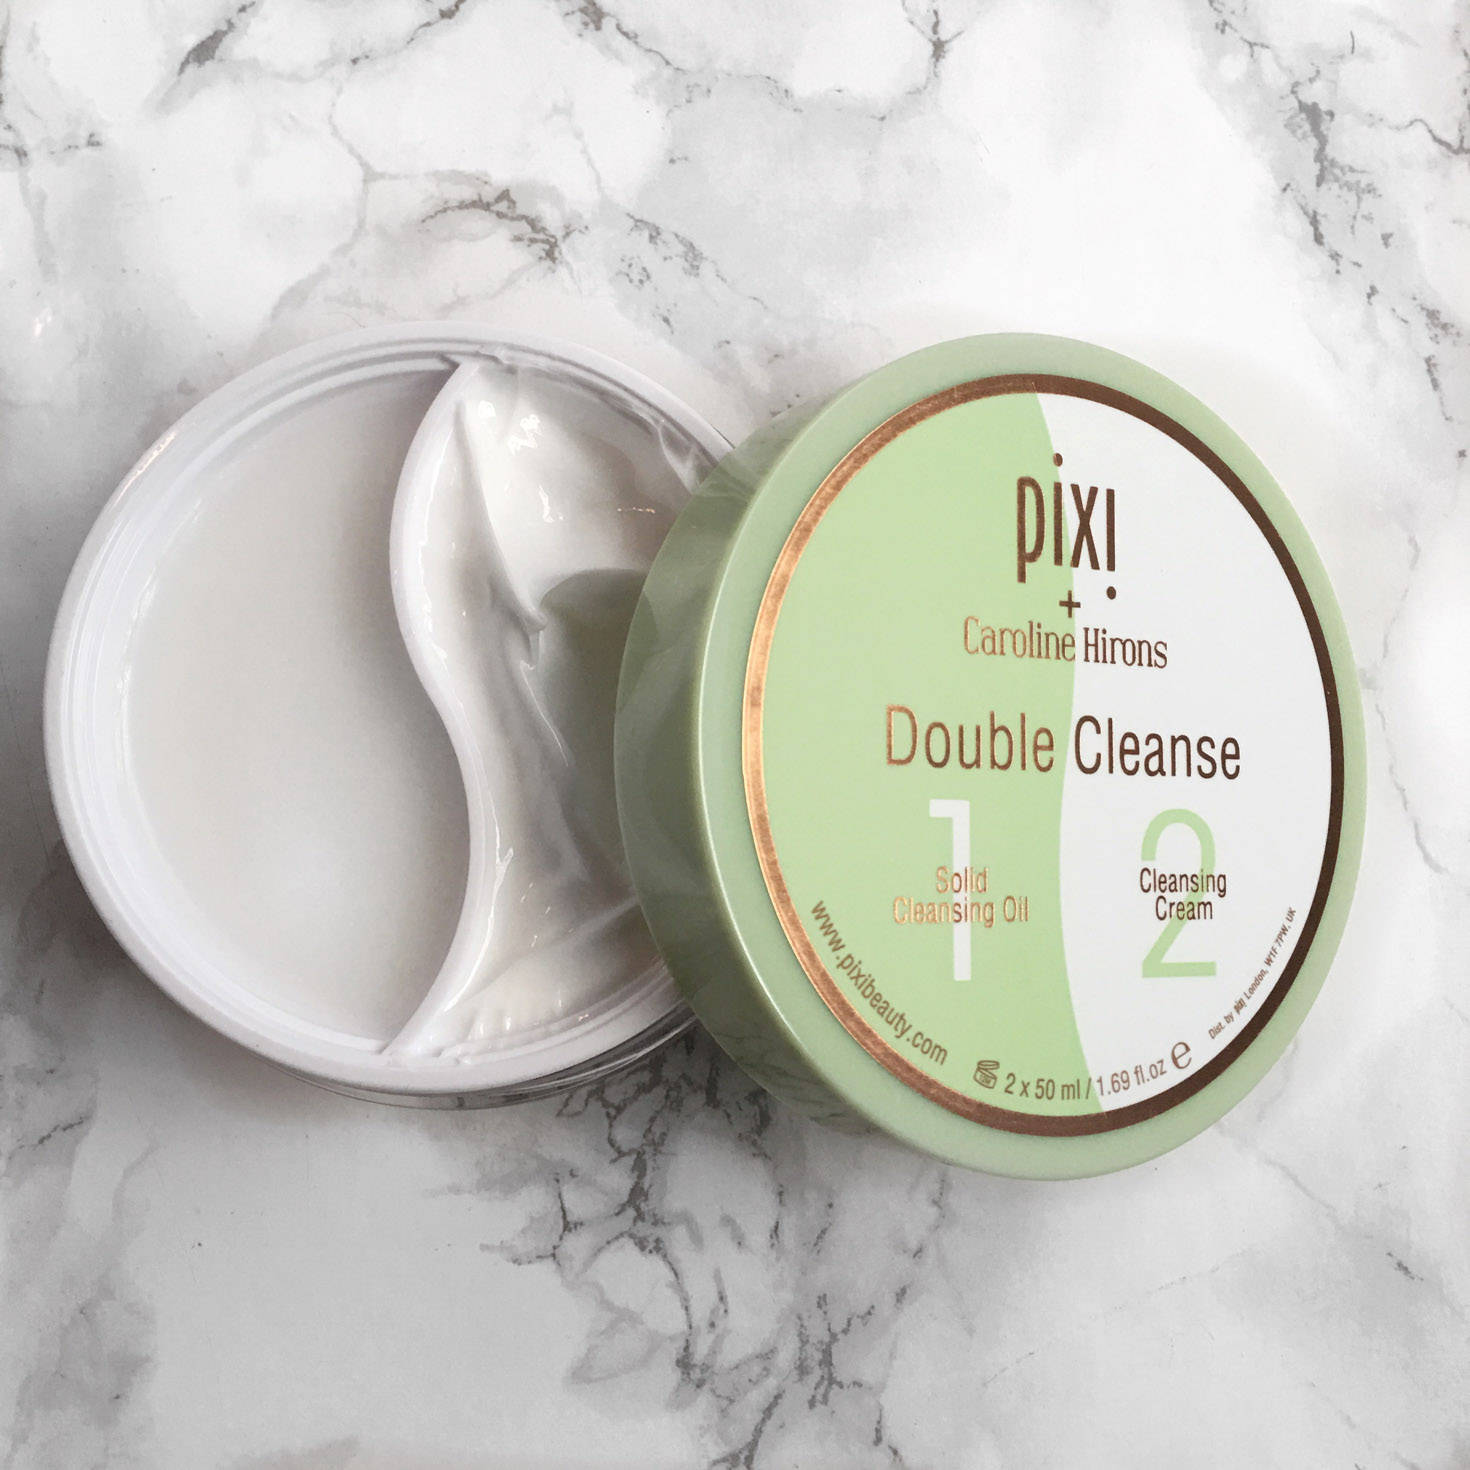 Pixi Pretties Caroline Hirons Double Cleanse - Le Fab Chic